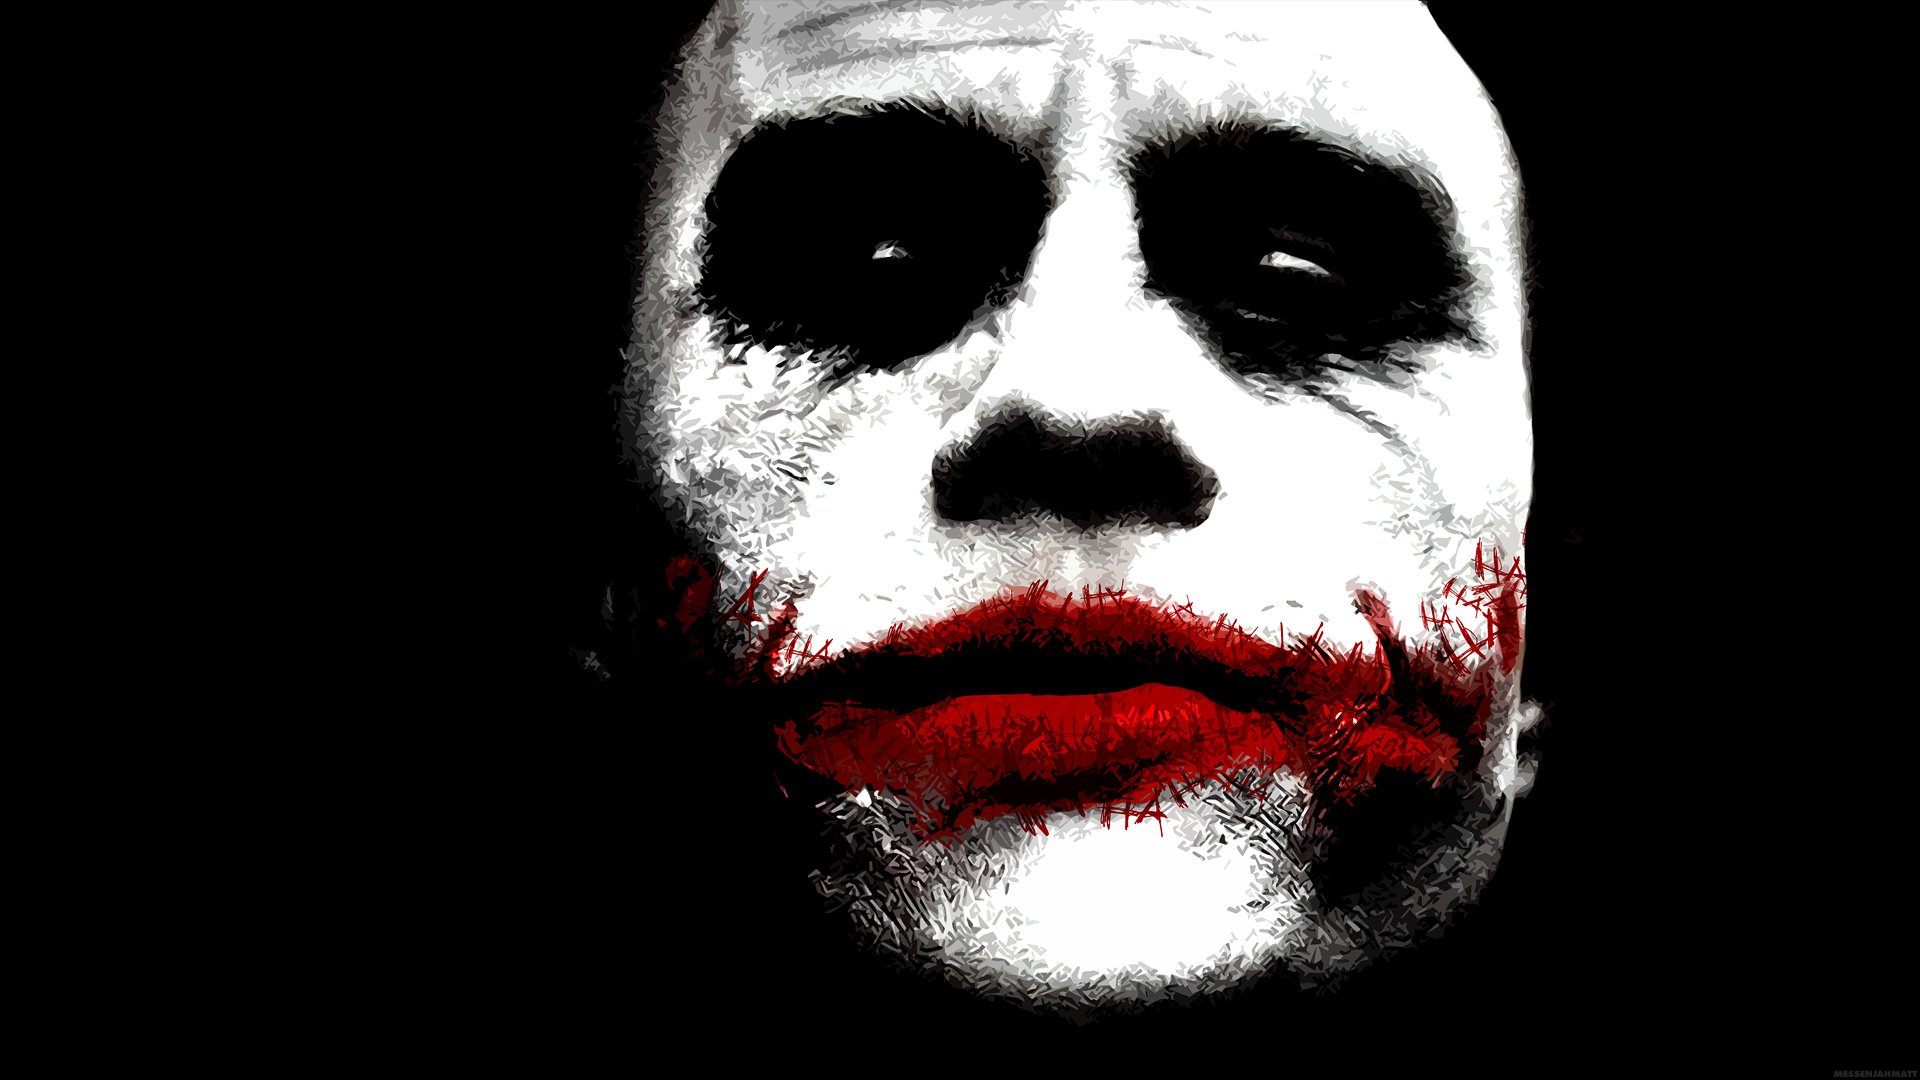 Joker Quotes Wallpaper Hd Wallpapers Widescreen Group 1920x1080